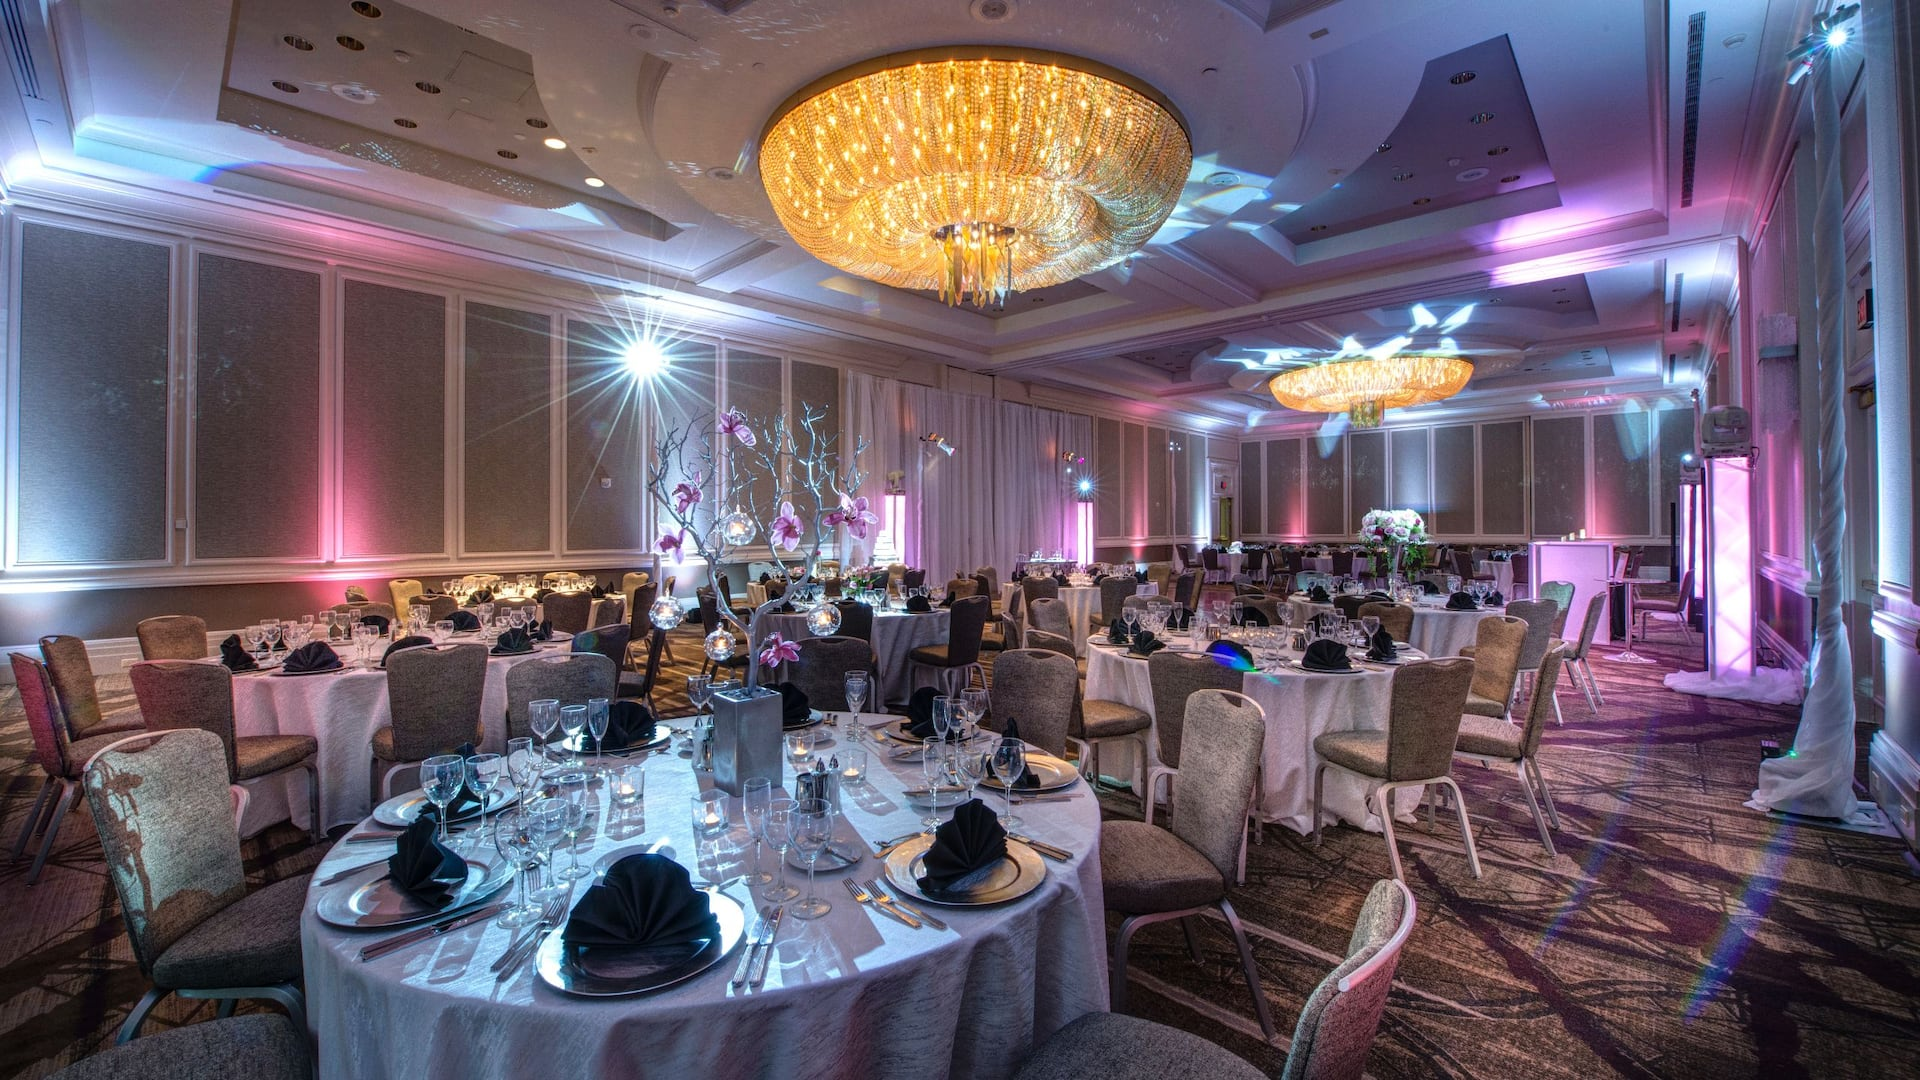 Wedding venues at Hyatt Regency Reston